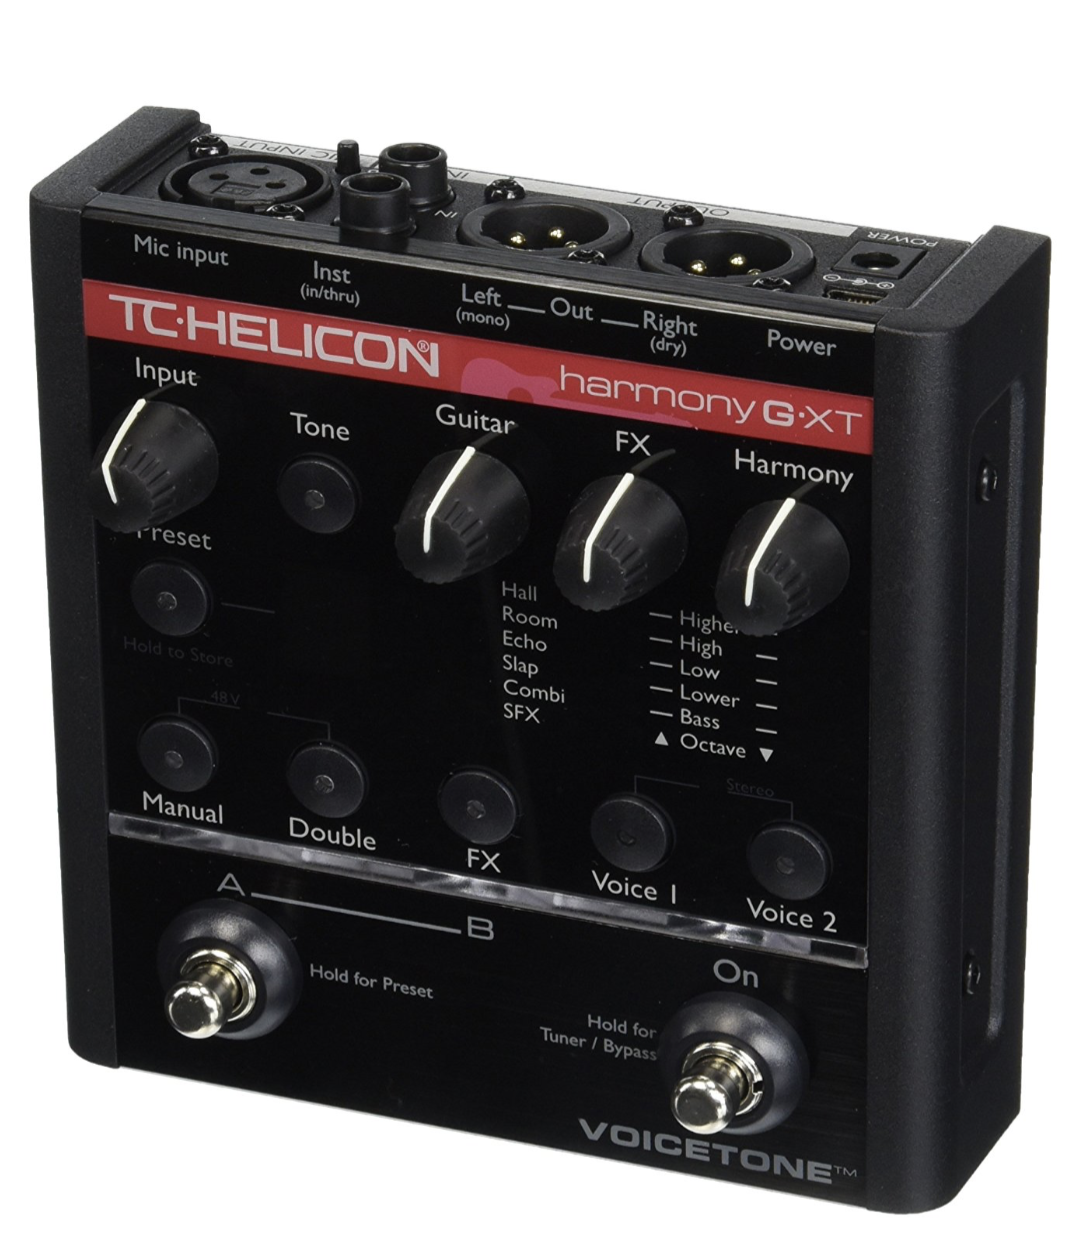 TC HELICON VOICETONE HARMONY-G XT VOCAL PROCESSOR FOR GUITARIST